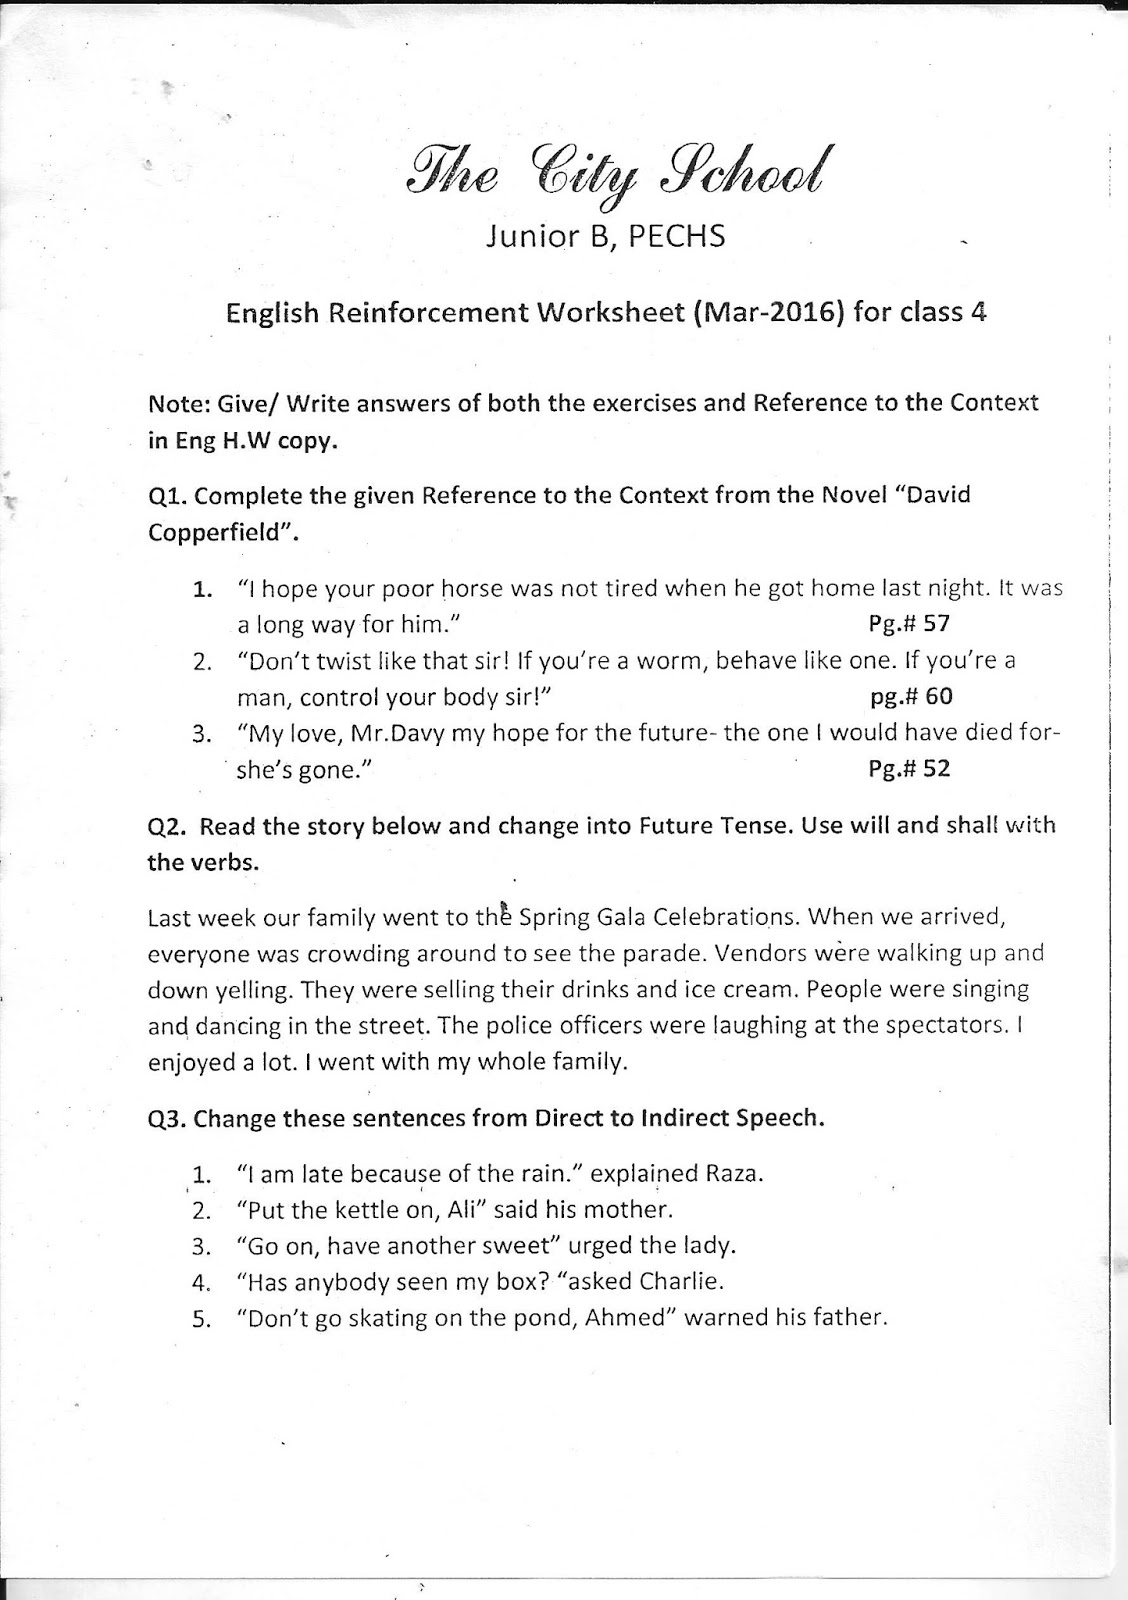 The City School: Worksheet for Class - 4 (Science, S.S.T, English ...